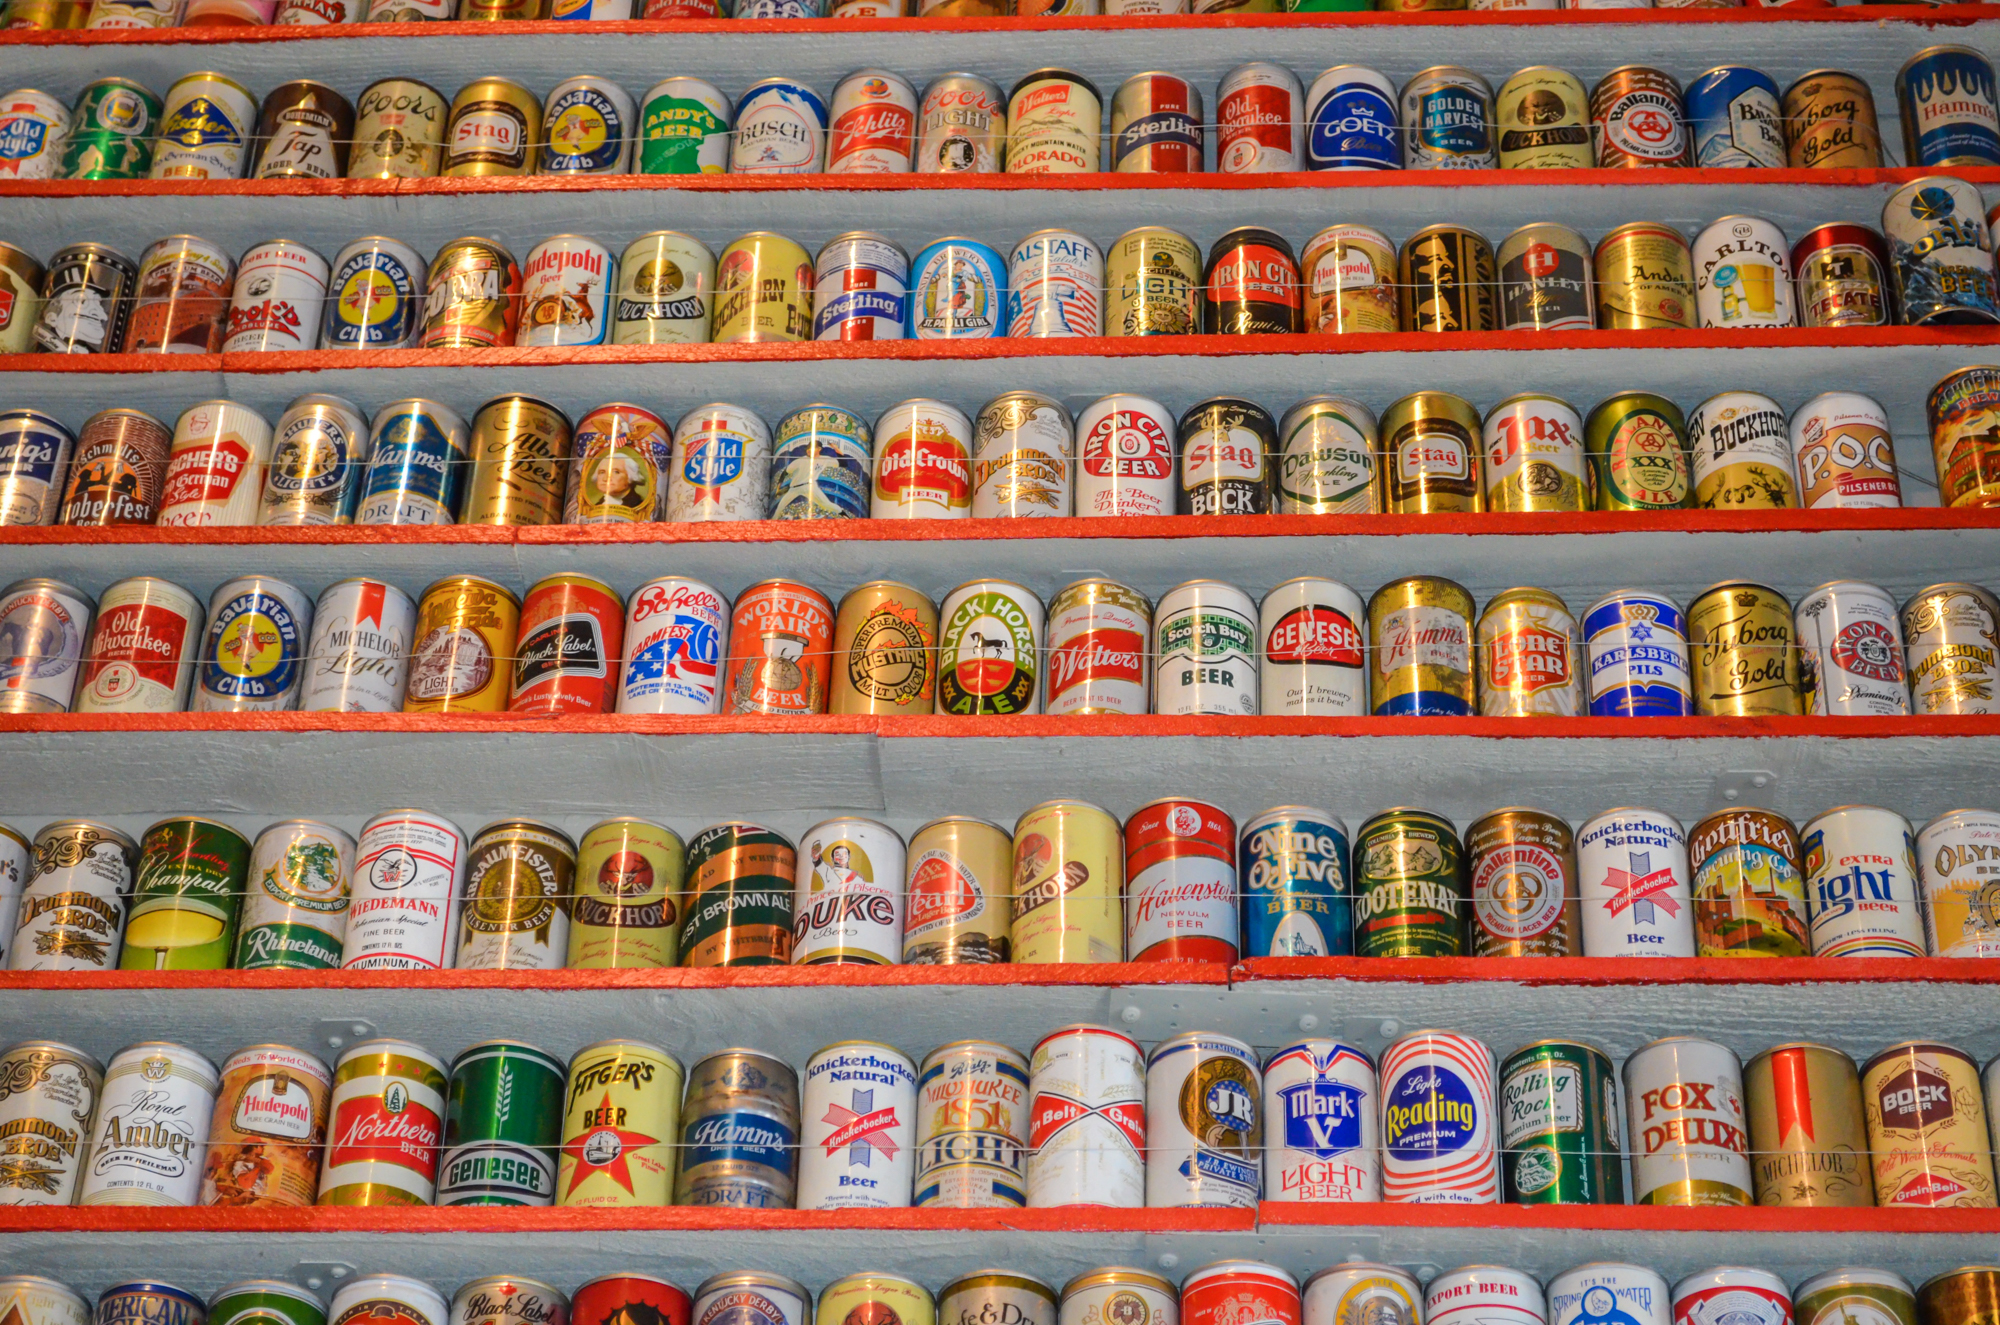 Closeup on an entire wall full of different beer cans.